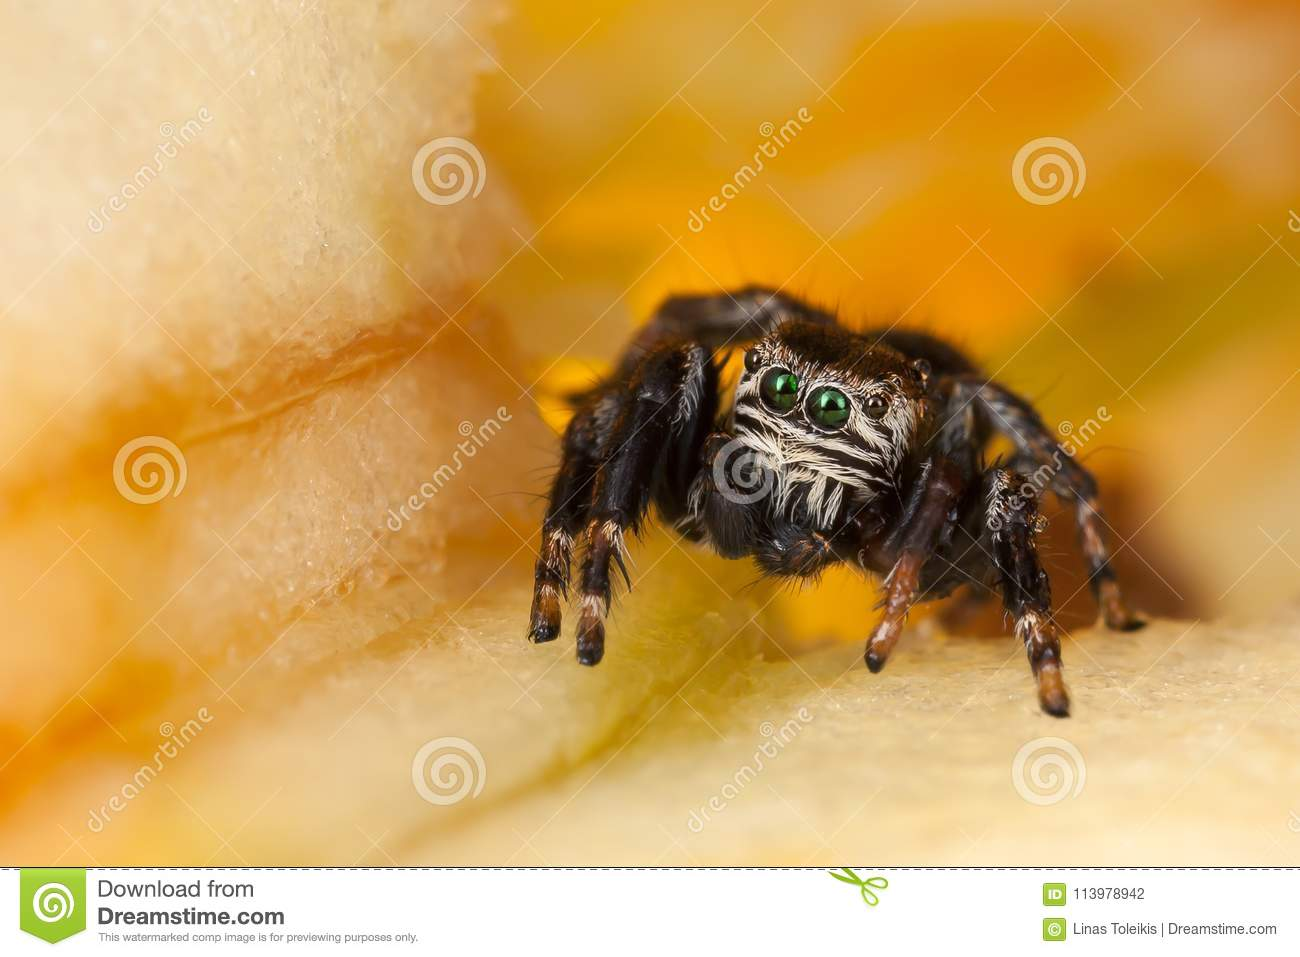 Jumping Spider On A Chopped Apple Stock Photo - Image of